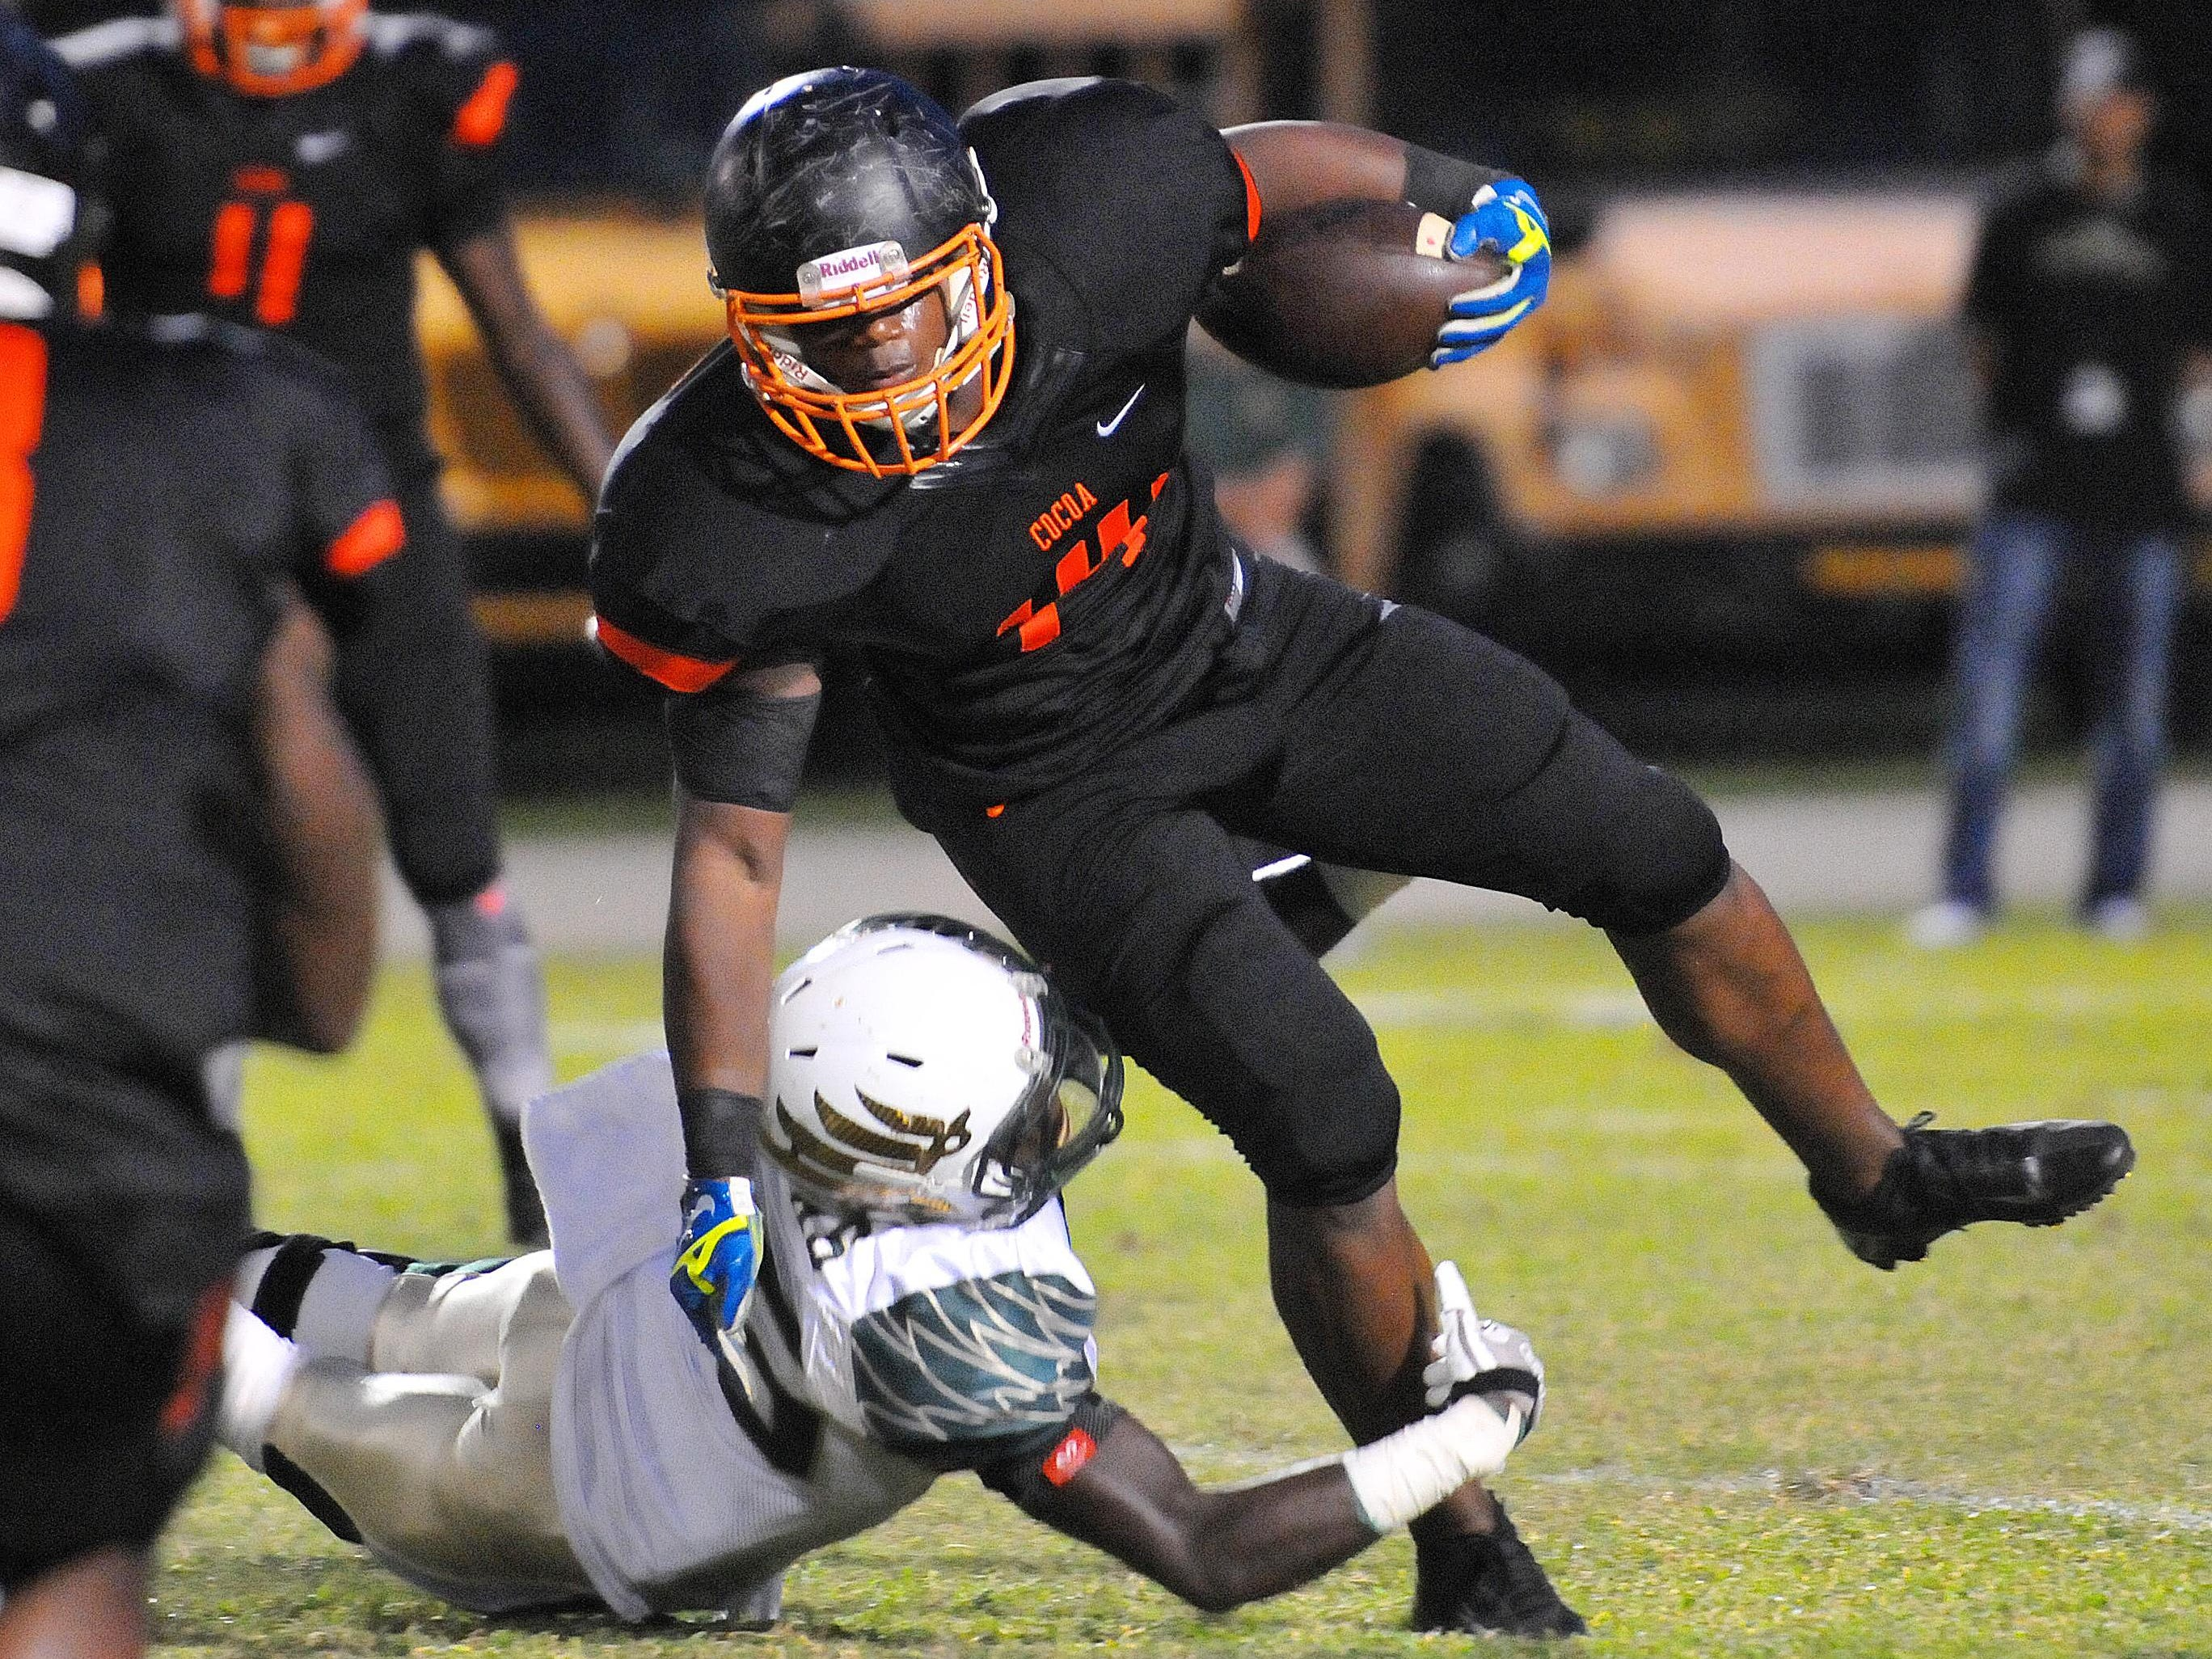 Cocoa High's Howard Stewart trys to pick up extra yards as Viera High's Jamyson Boyd holds on during Friday night's game at Tiger Stadium.